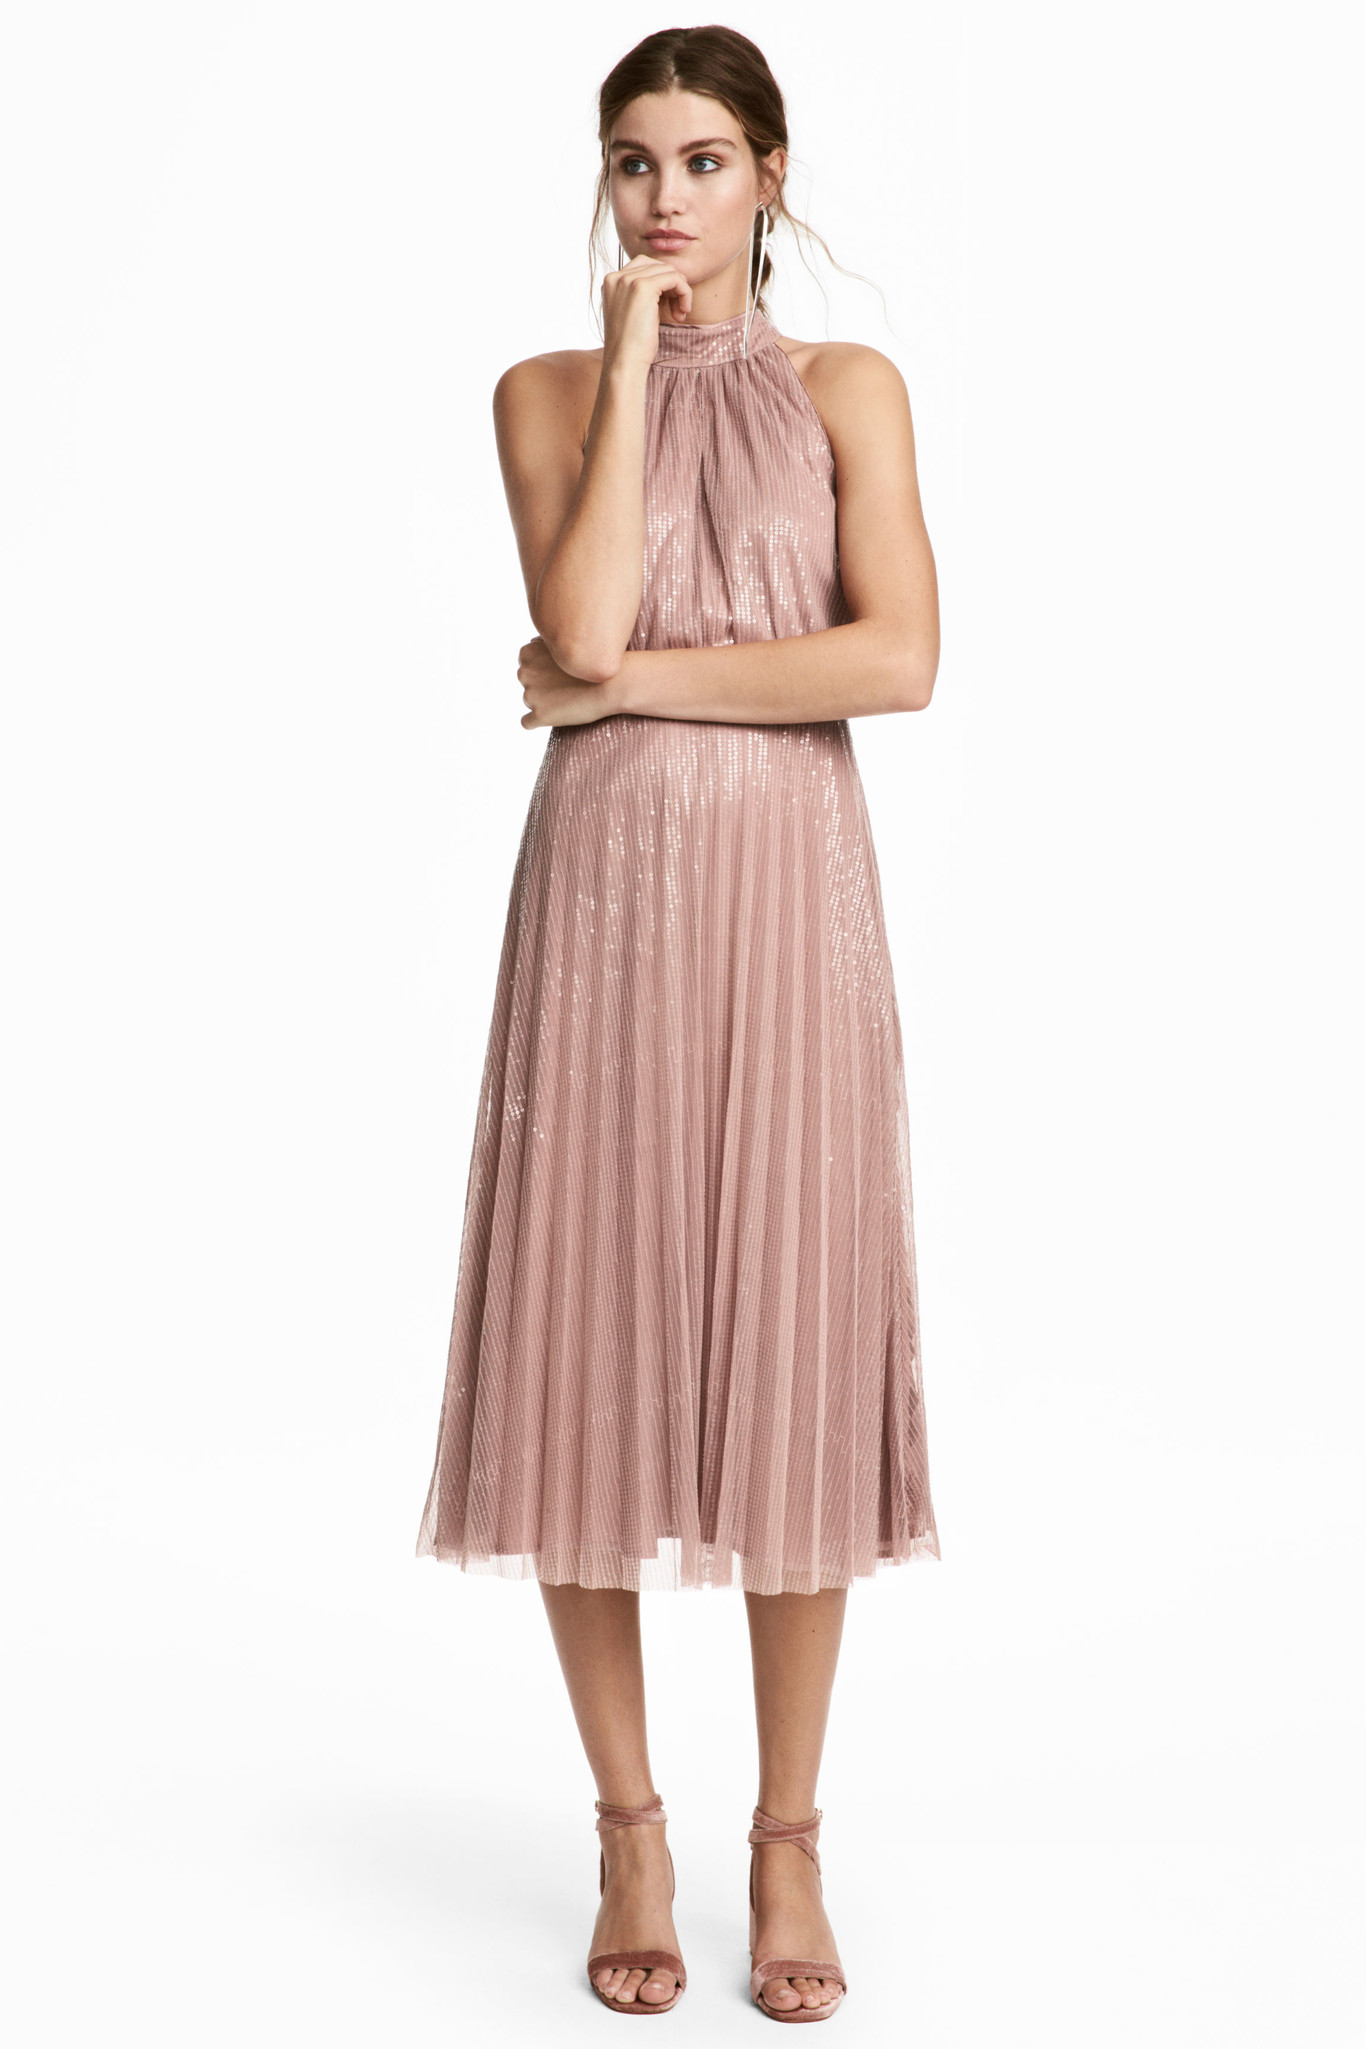 17 Christmas dresses that you will wear again at weddings - Today ...